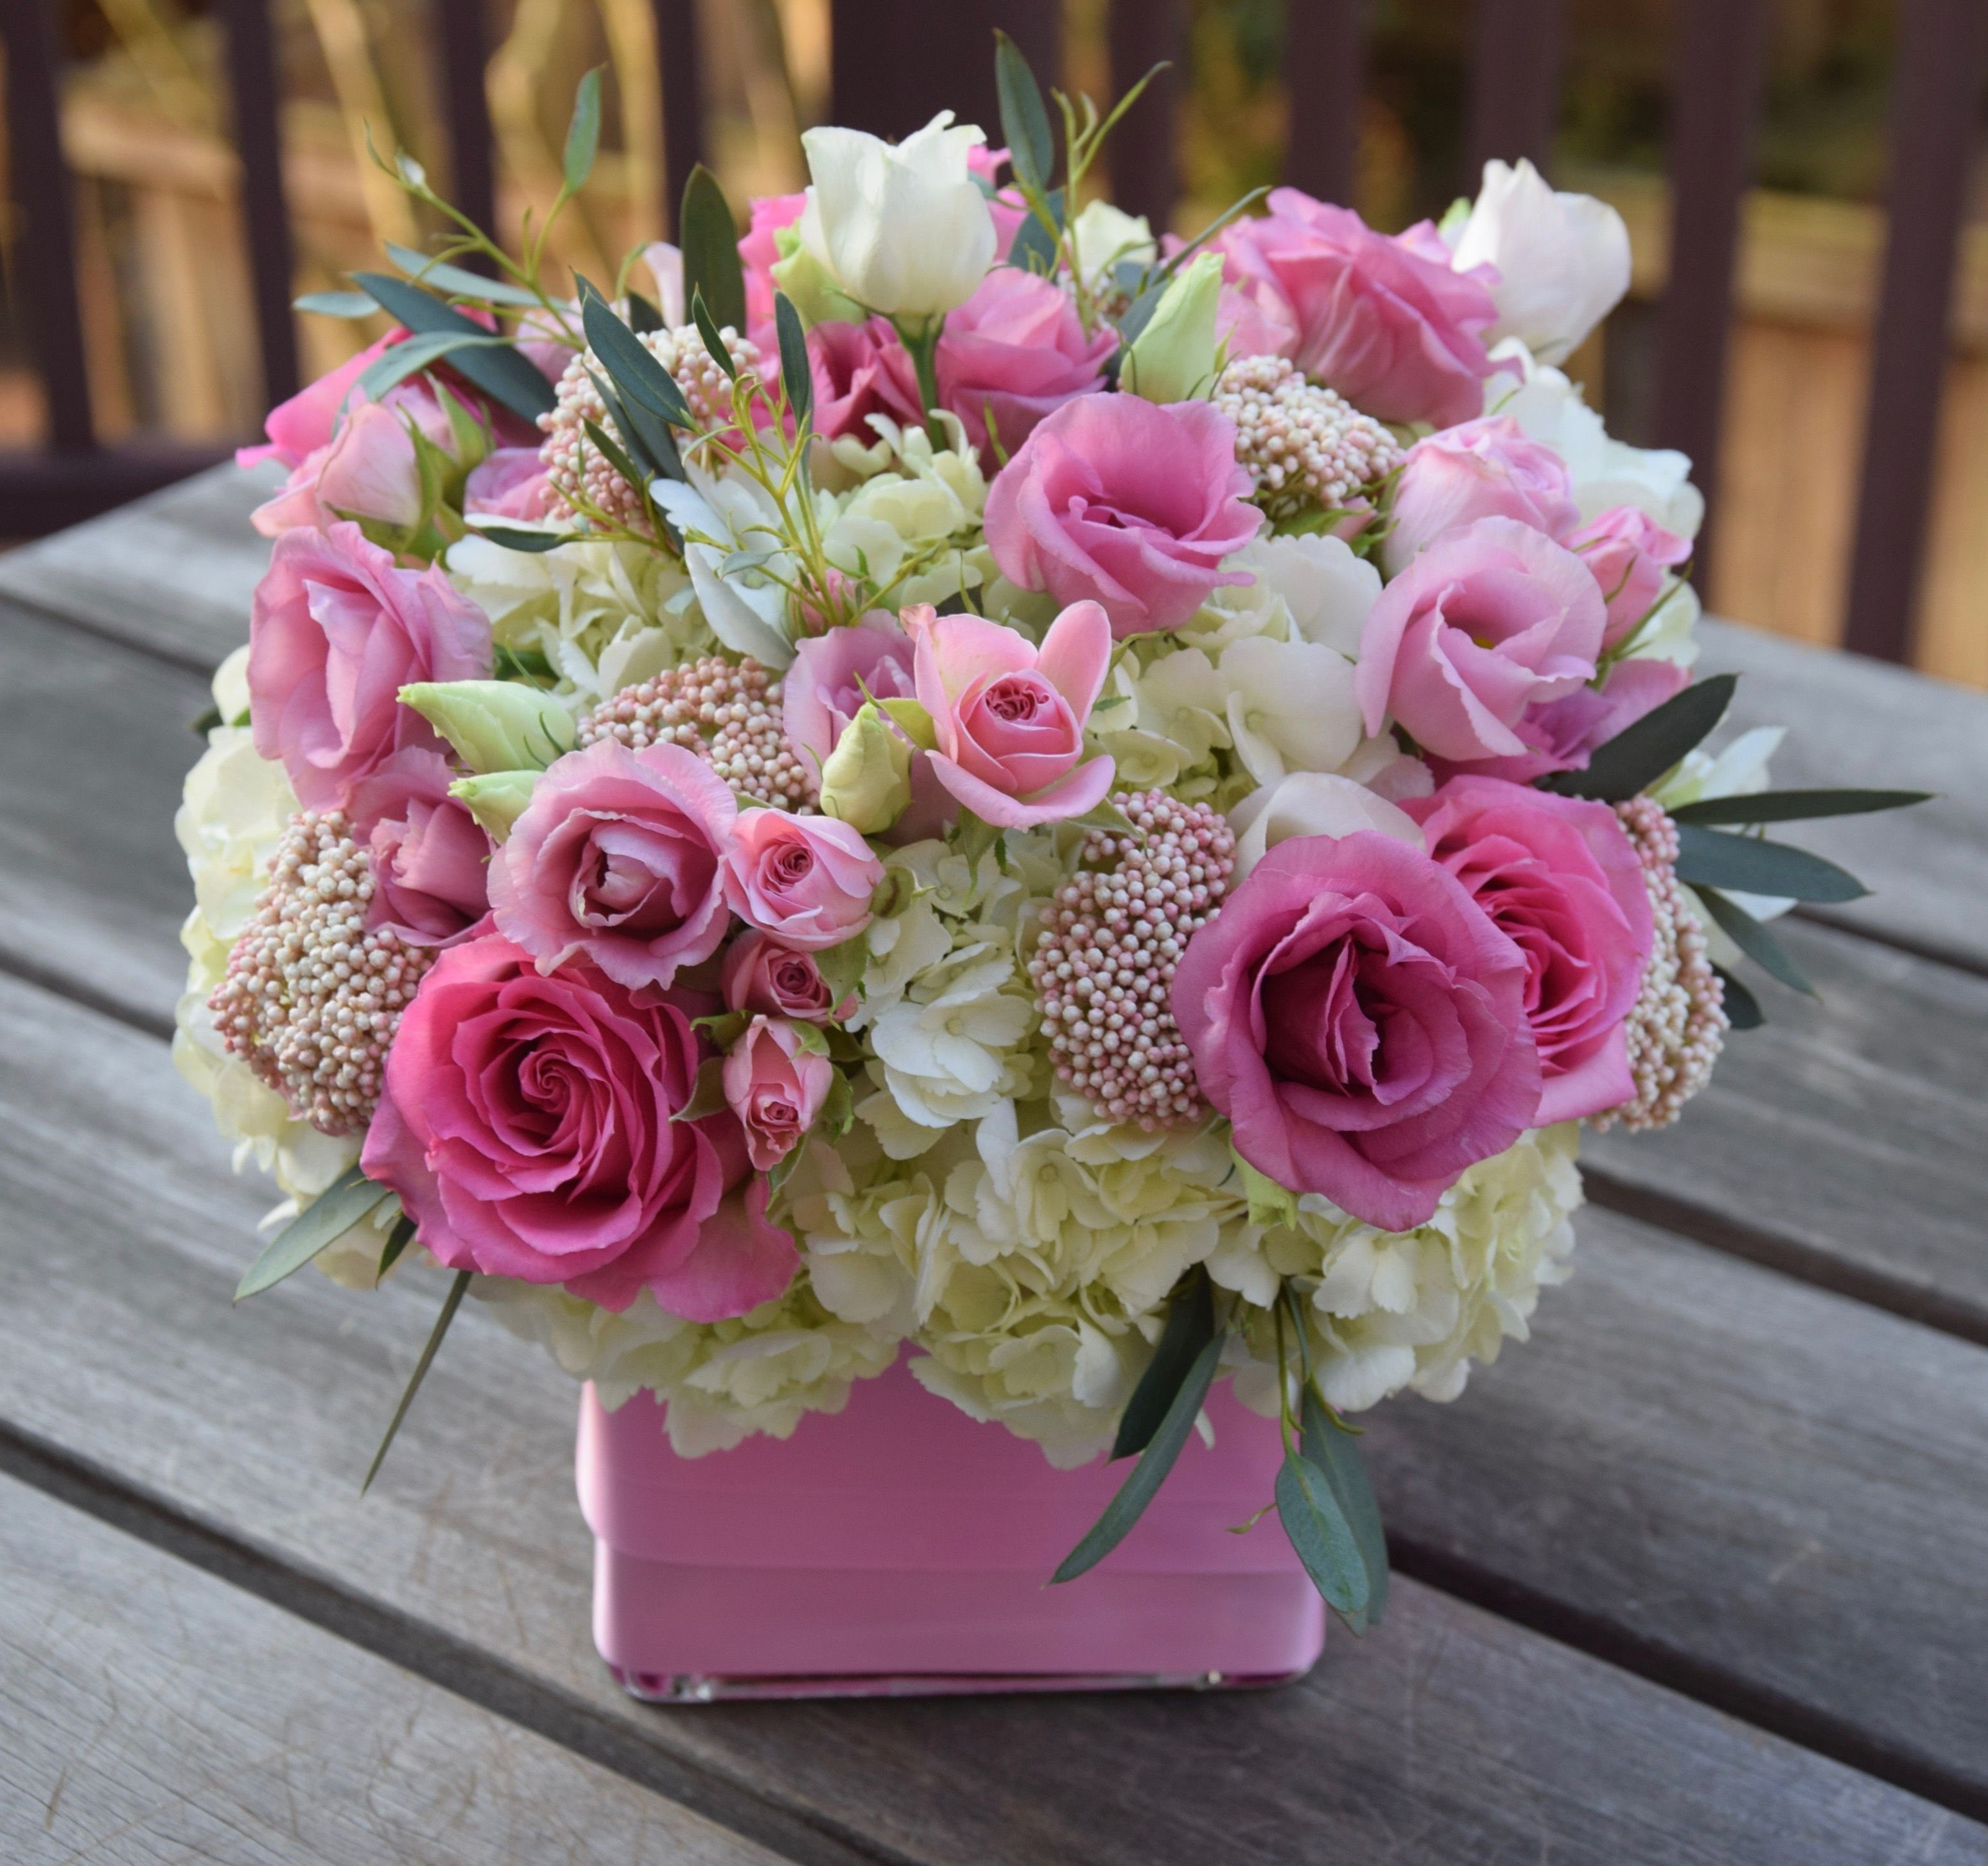 Birthday flowers with pinks and whites spray roses roses rice cut flowers izmirmasajfo